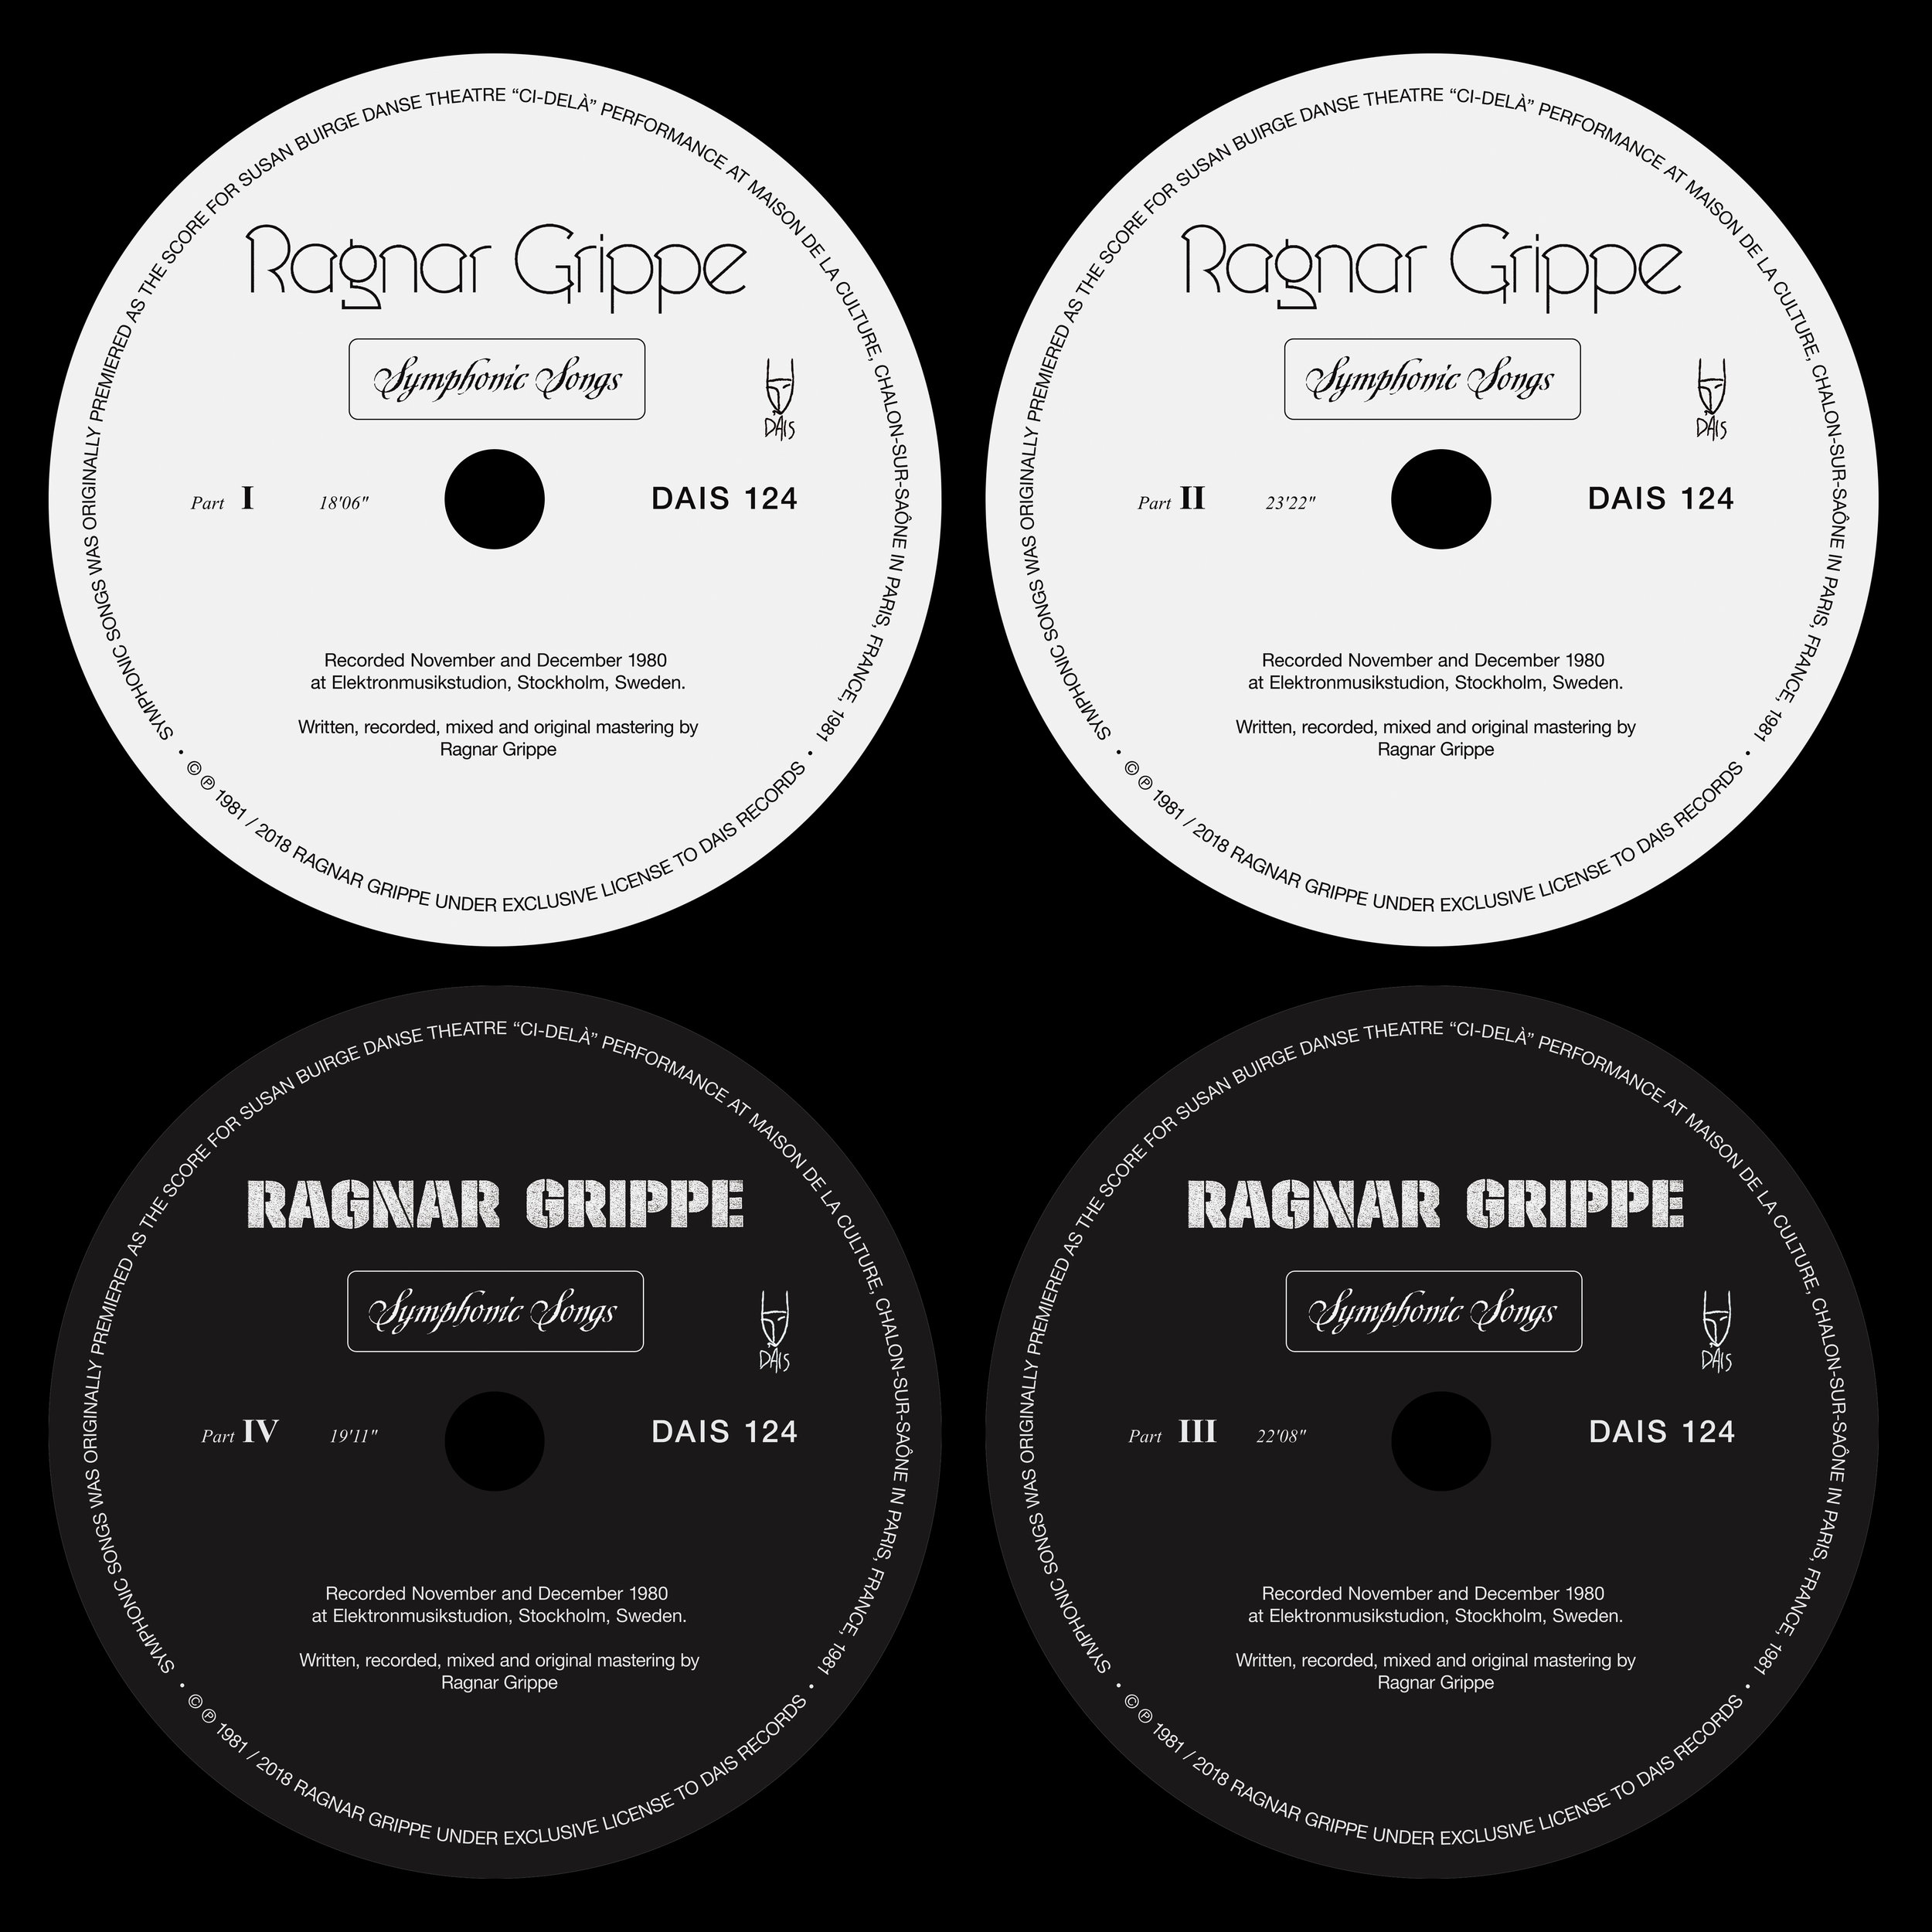 Ragnar_Grippe - Symphonic_Songs - DIAS126 - center labels.jpg